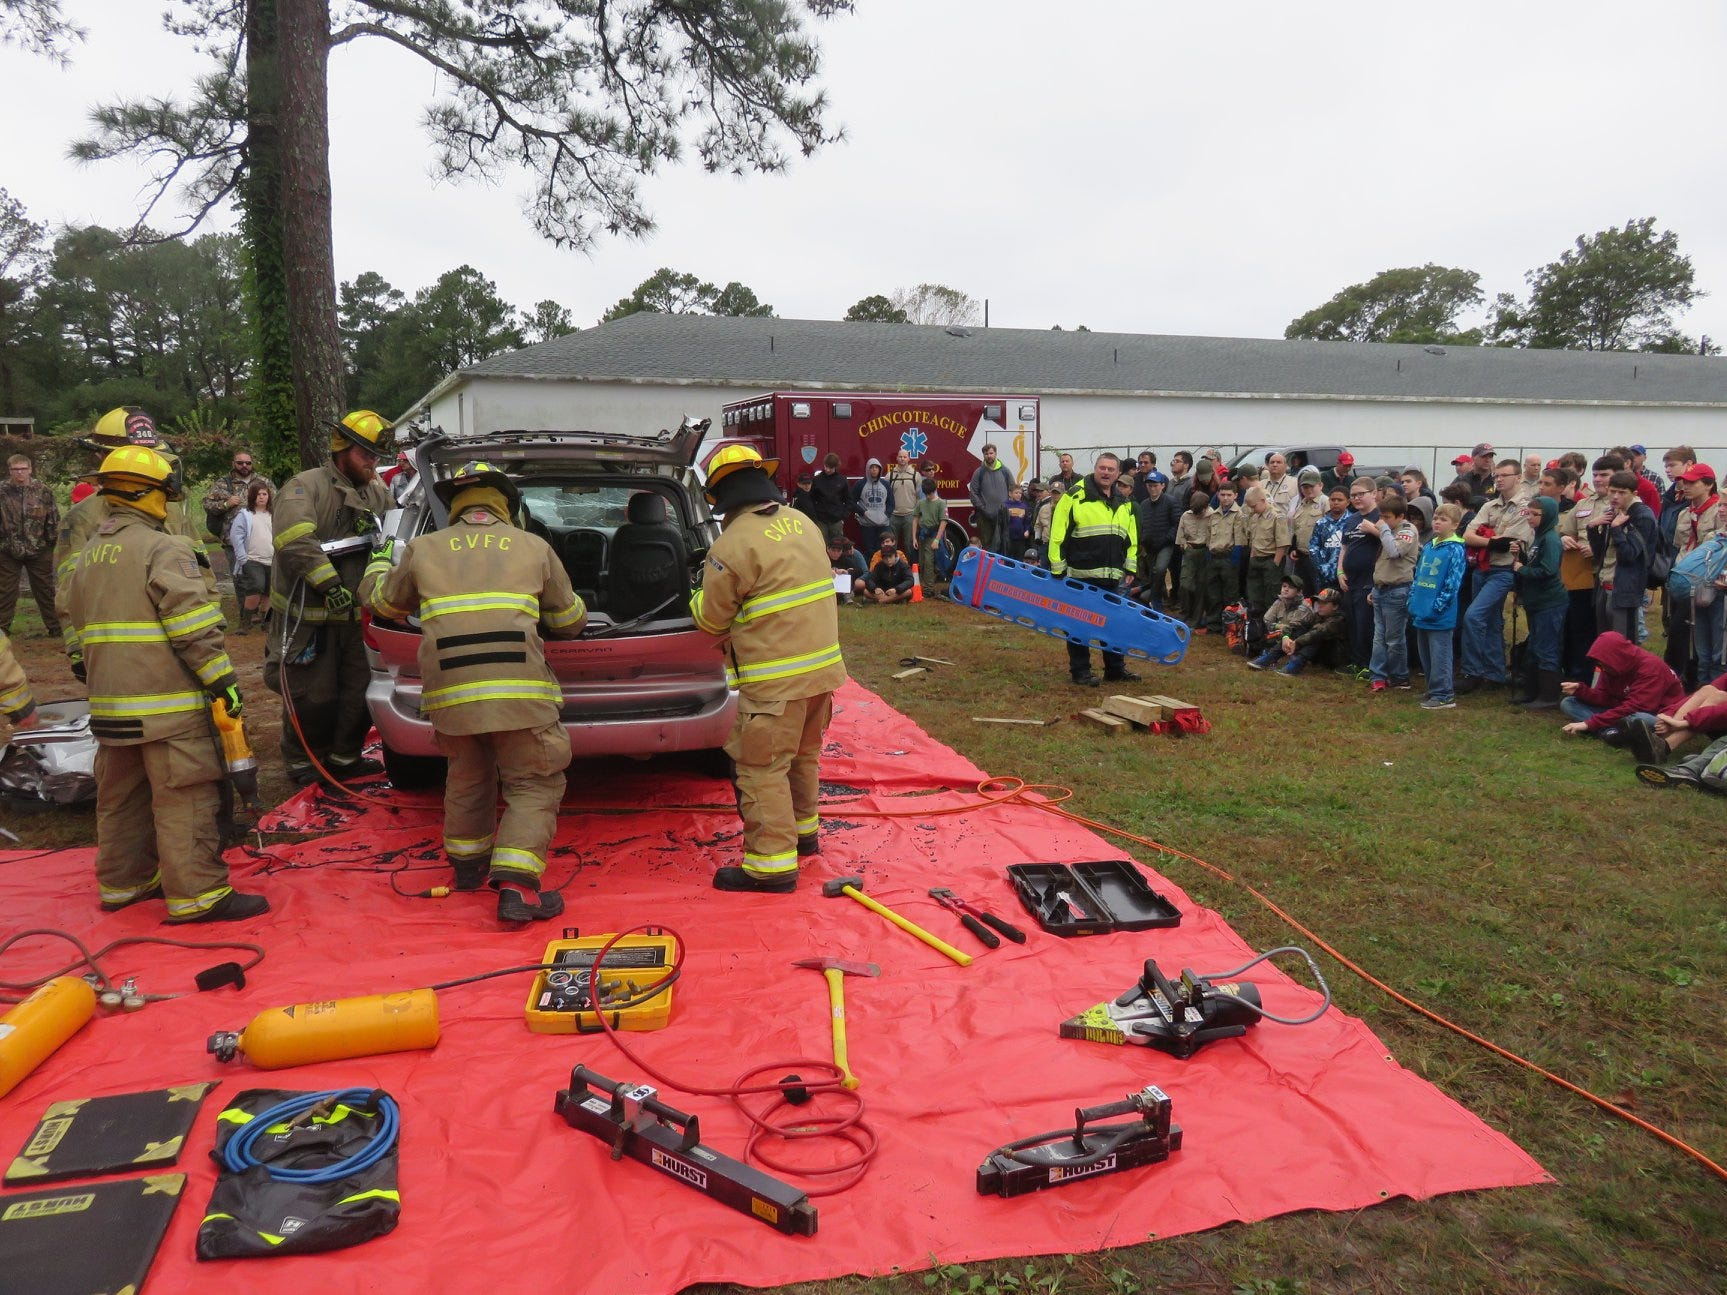 The Scouts watch as members of the Chincoteague Volunteer Fire Company demonstrate how they respond to an automobile accident during the Camporee.